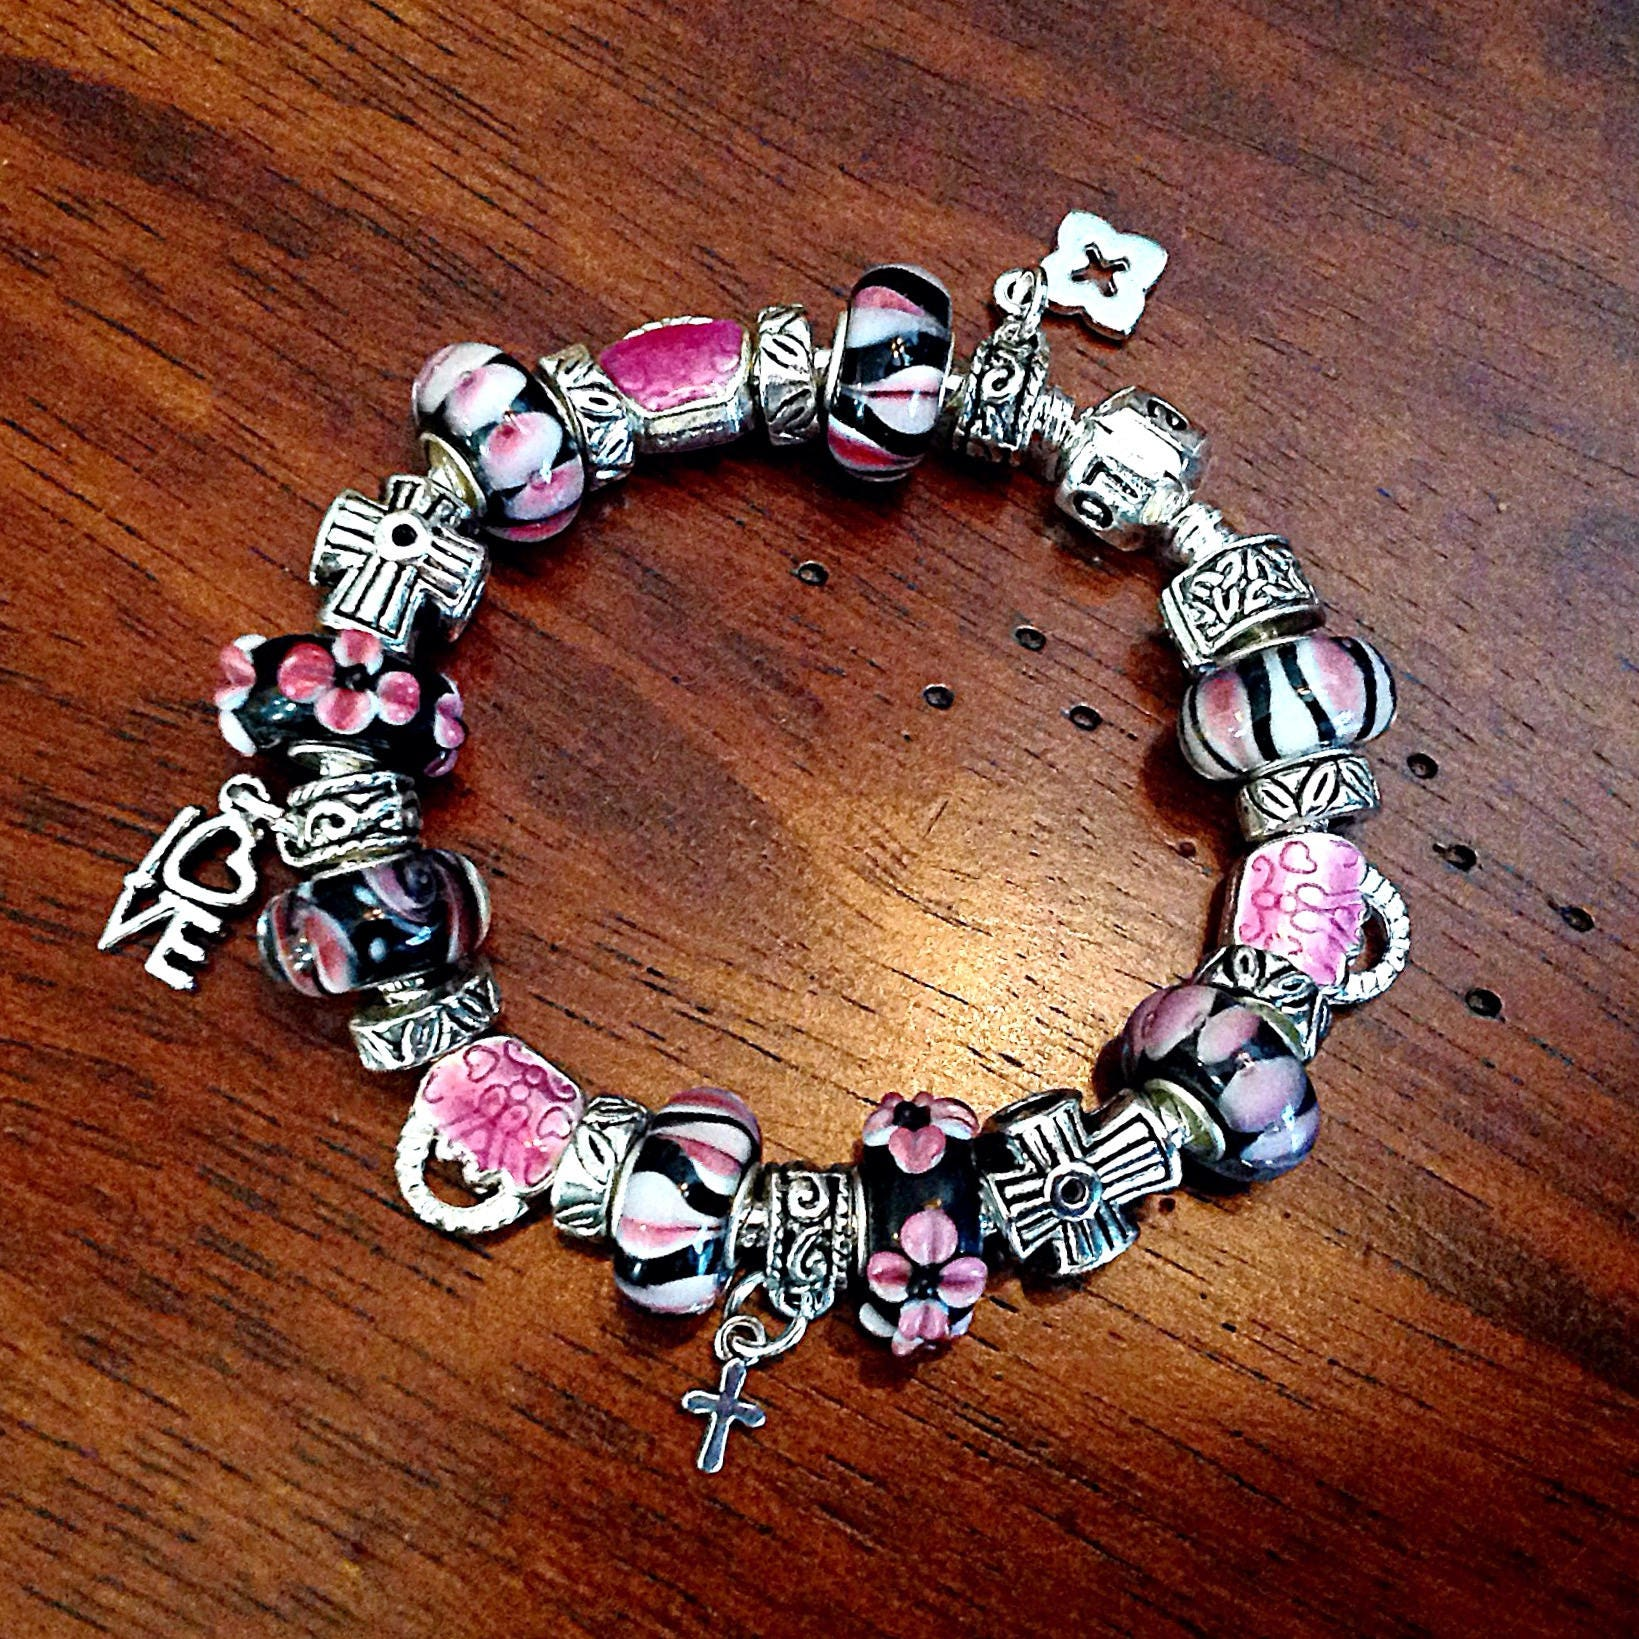 fundraiser bracelet give lymphoma il support up fullxfull leukemia products awareness cancer never blood and society